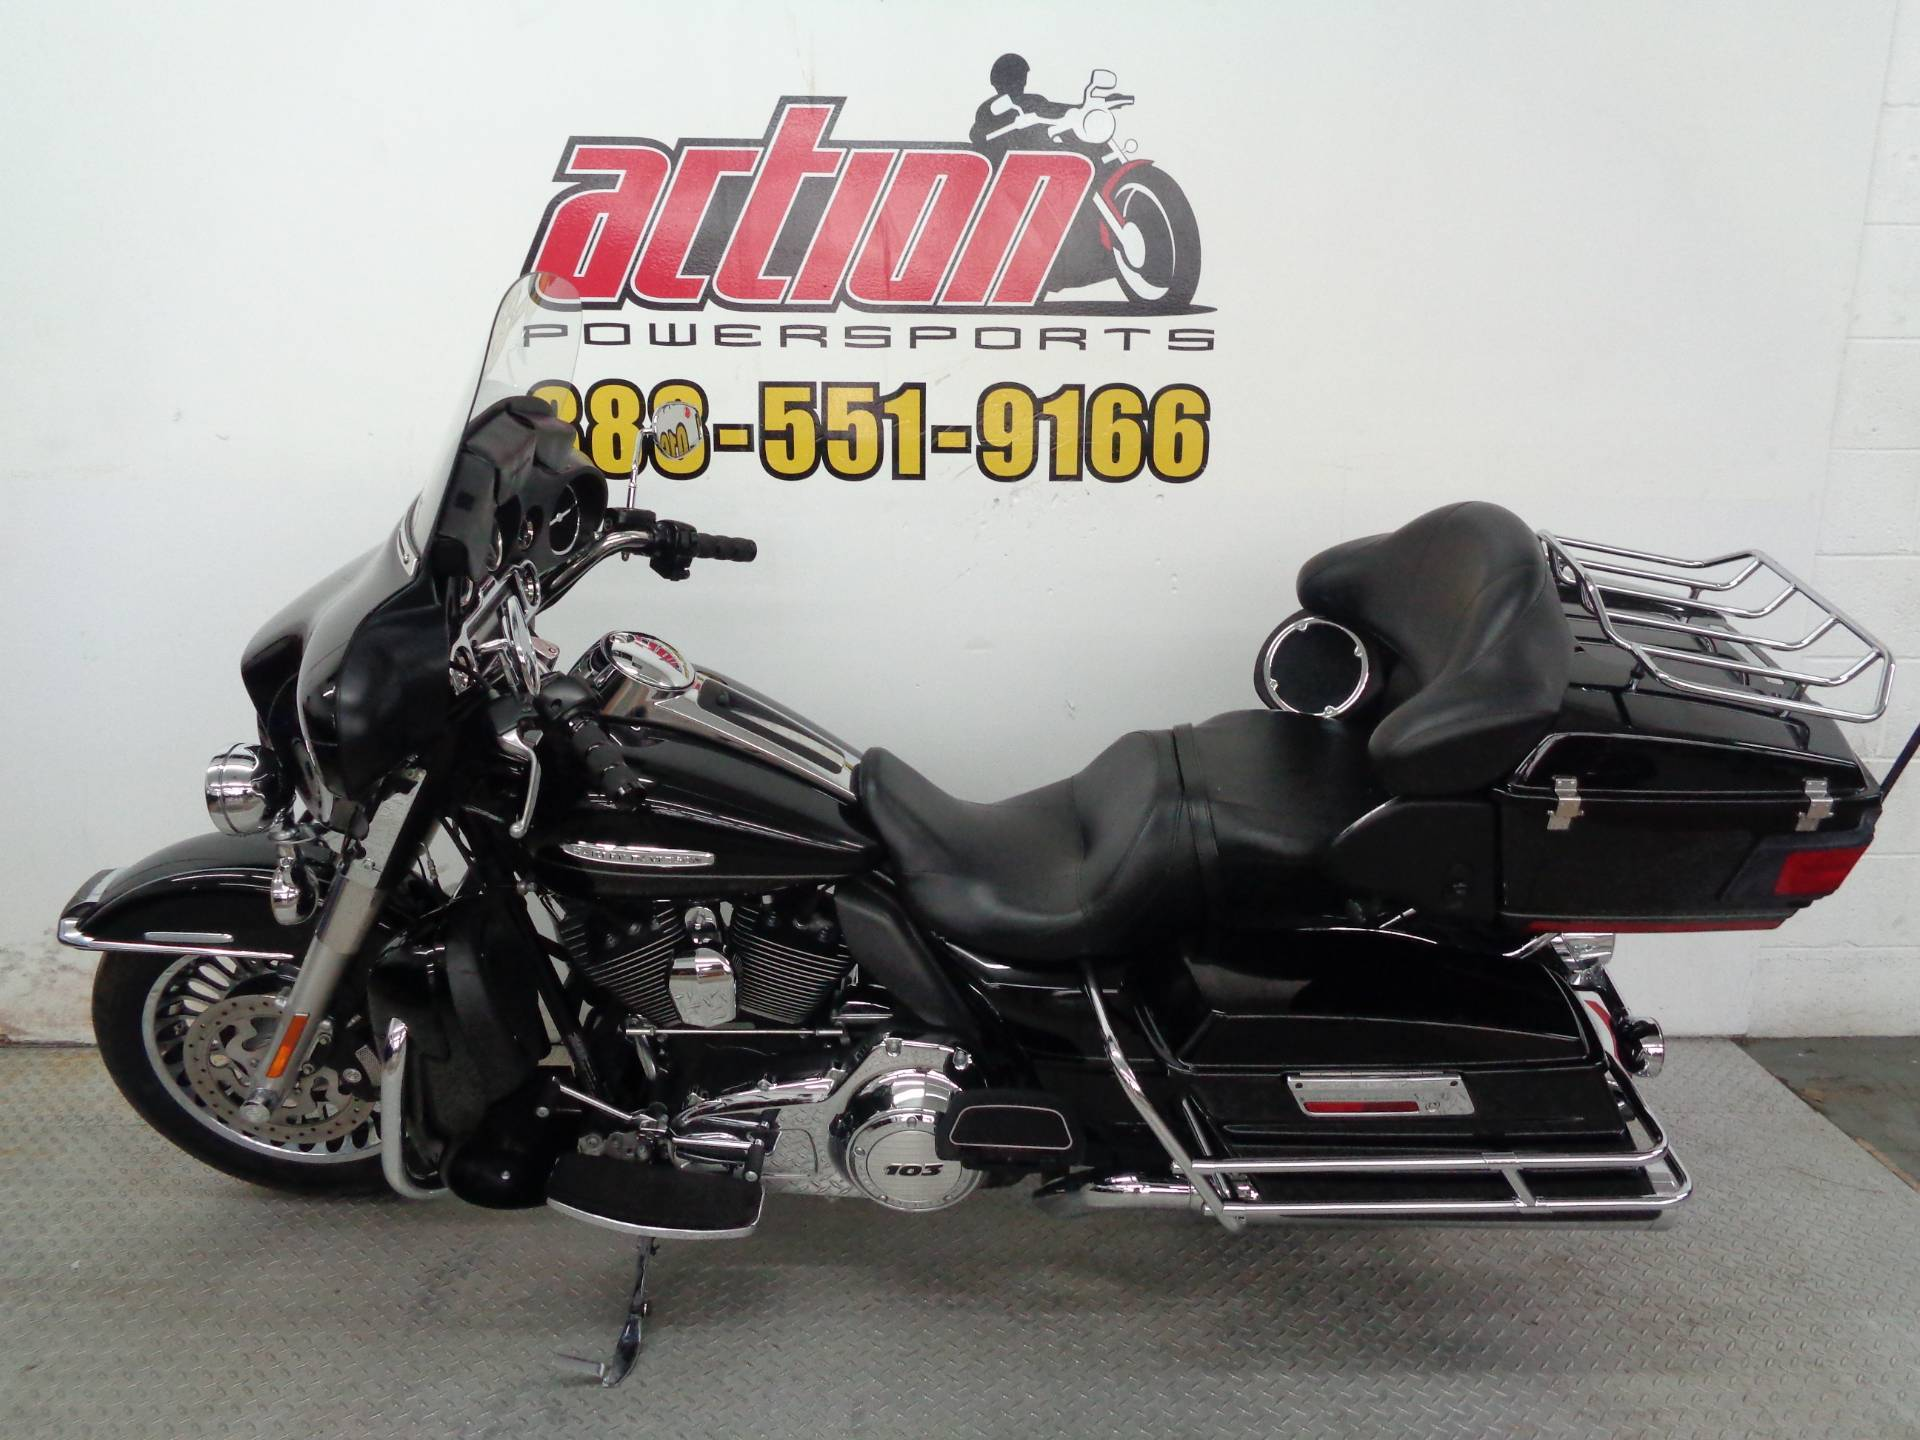 2013 Harley-Davidson Electra Glide® Ultra Limited in Norman, Oklahoma - Photo 1